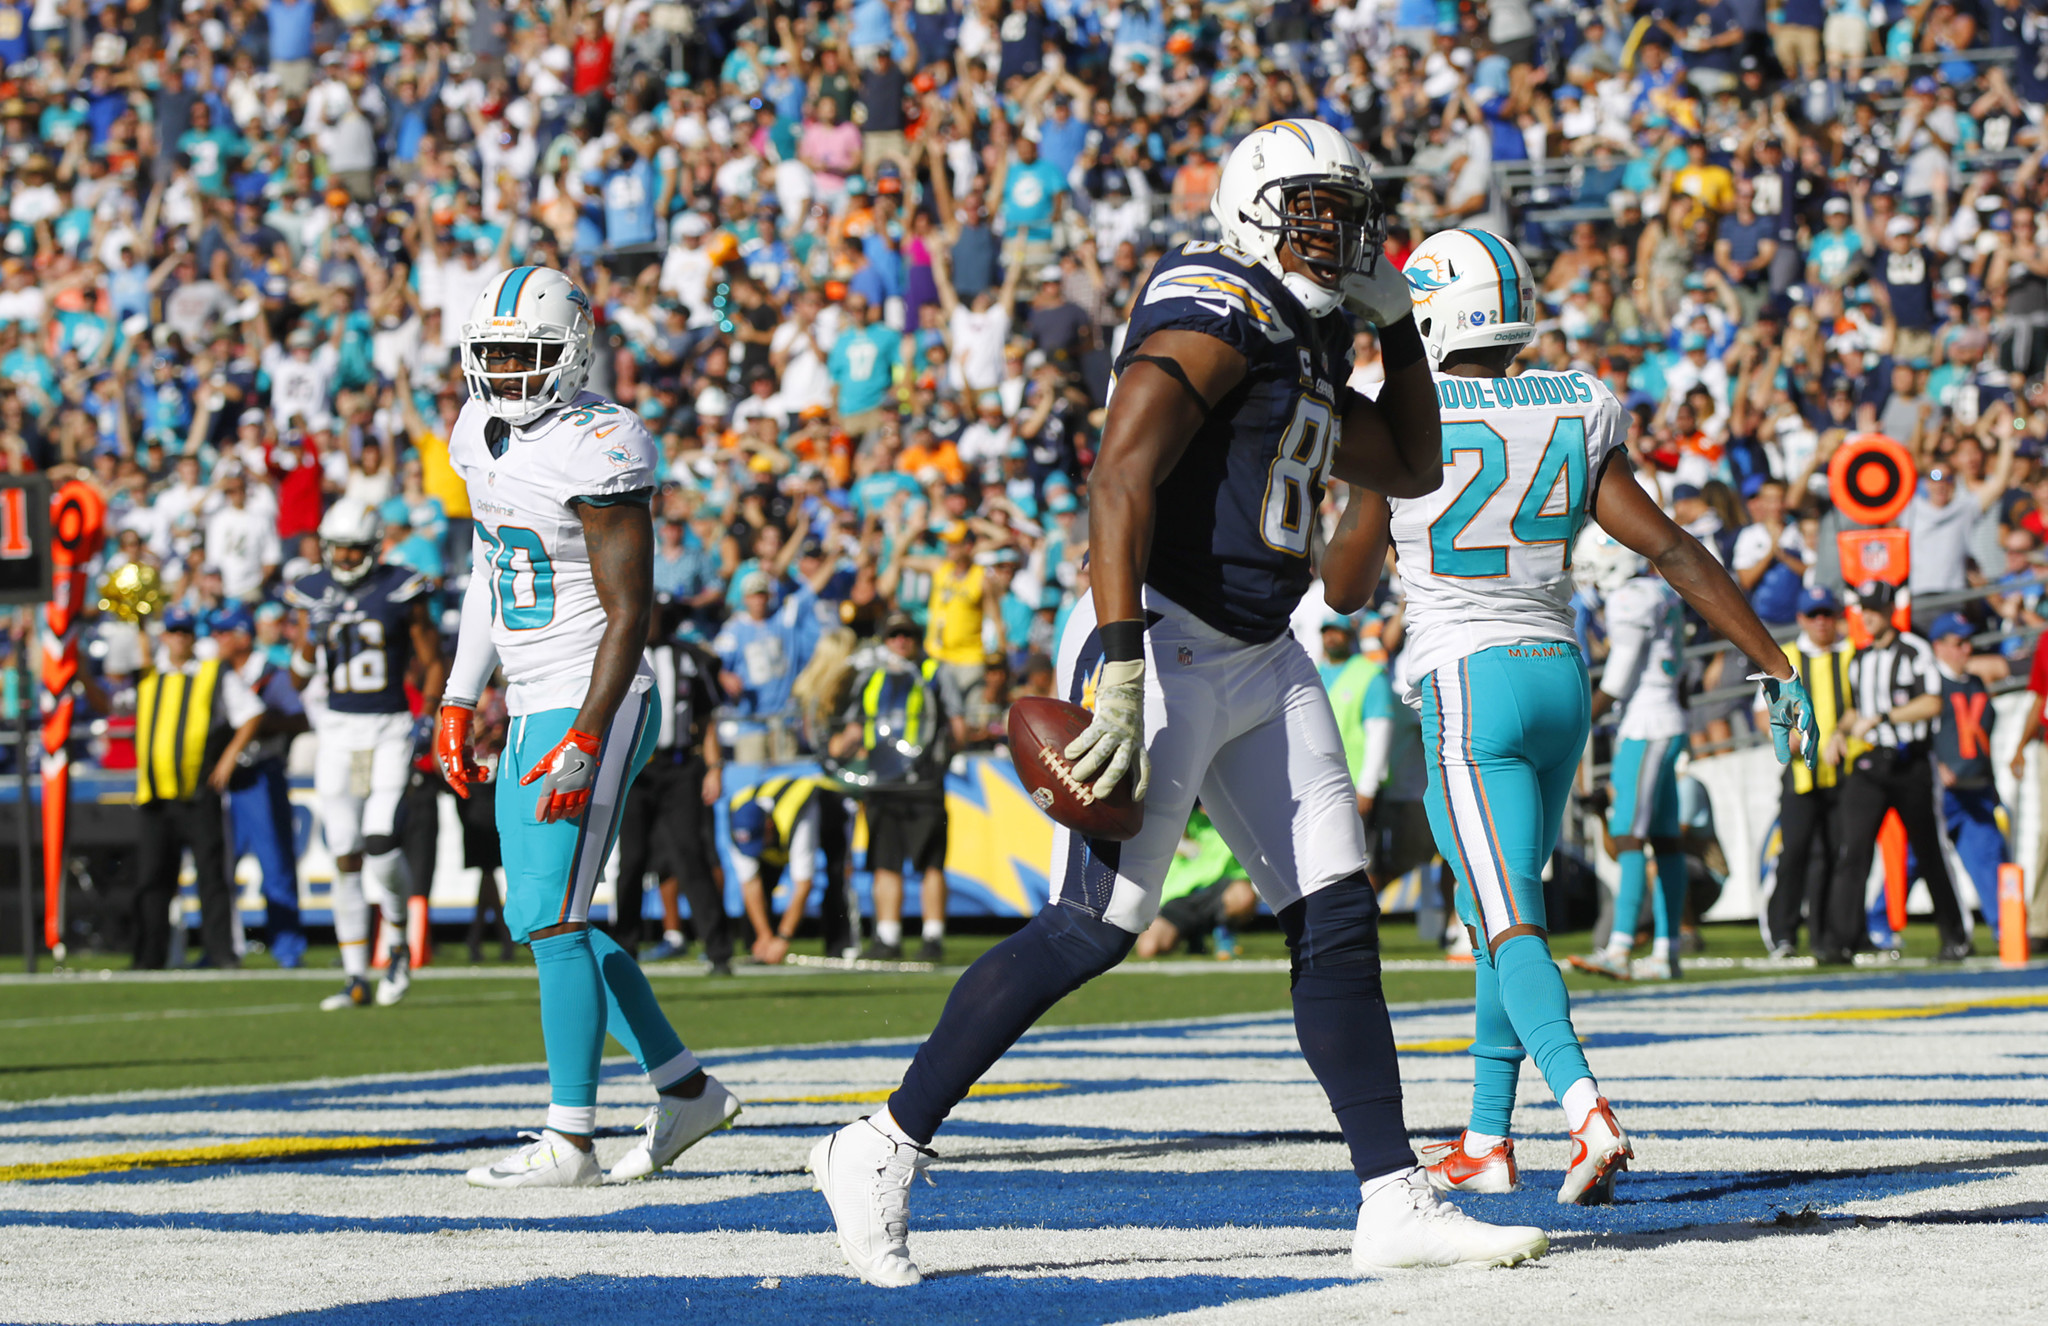 Sd-sp-canepa-chargers-dolphins-20161113